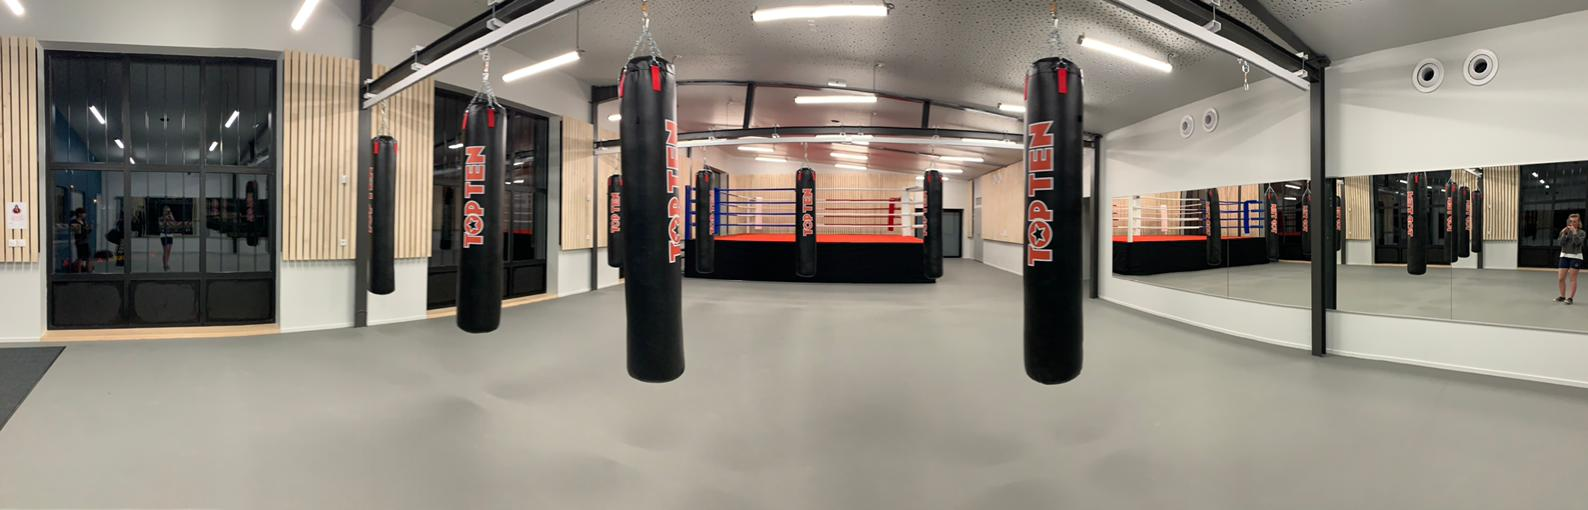 boxe le puy savate